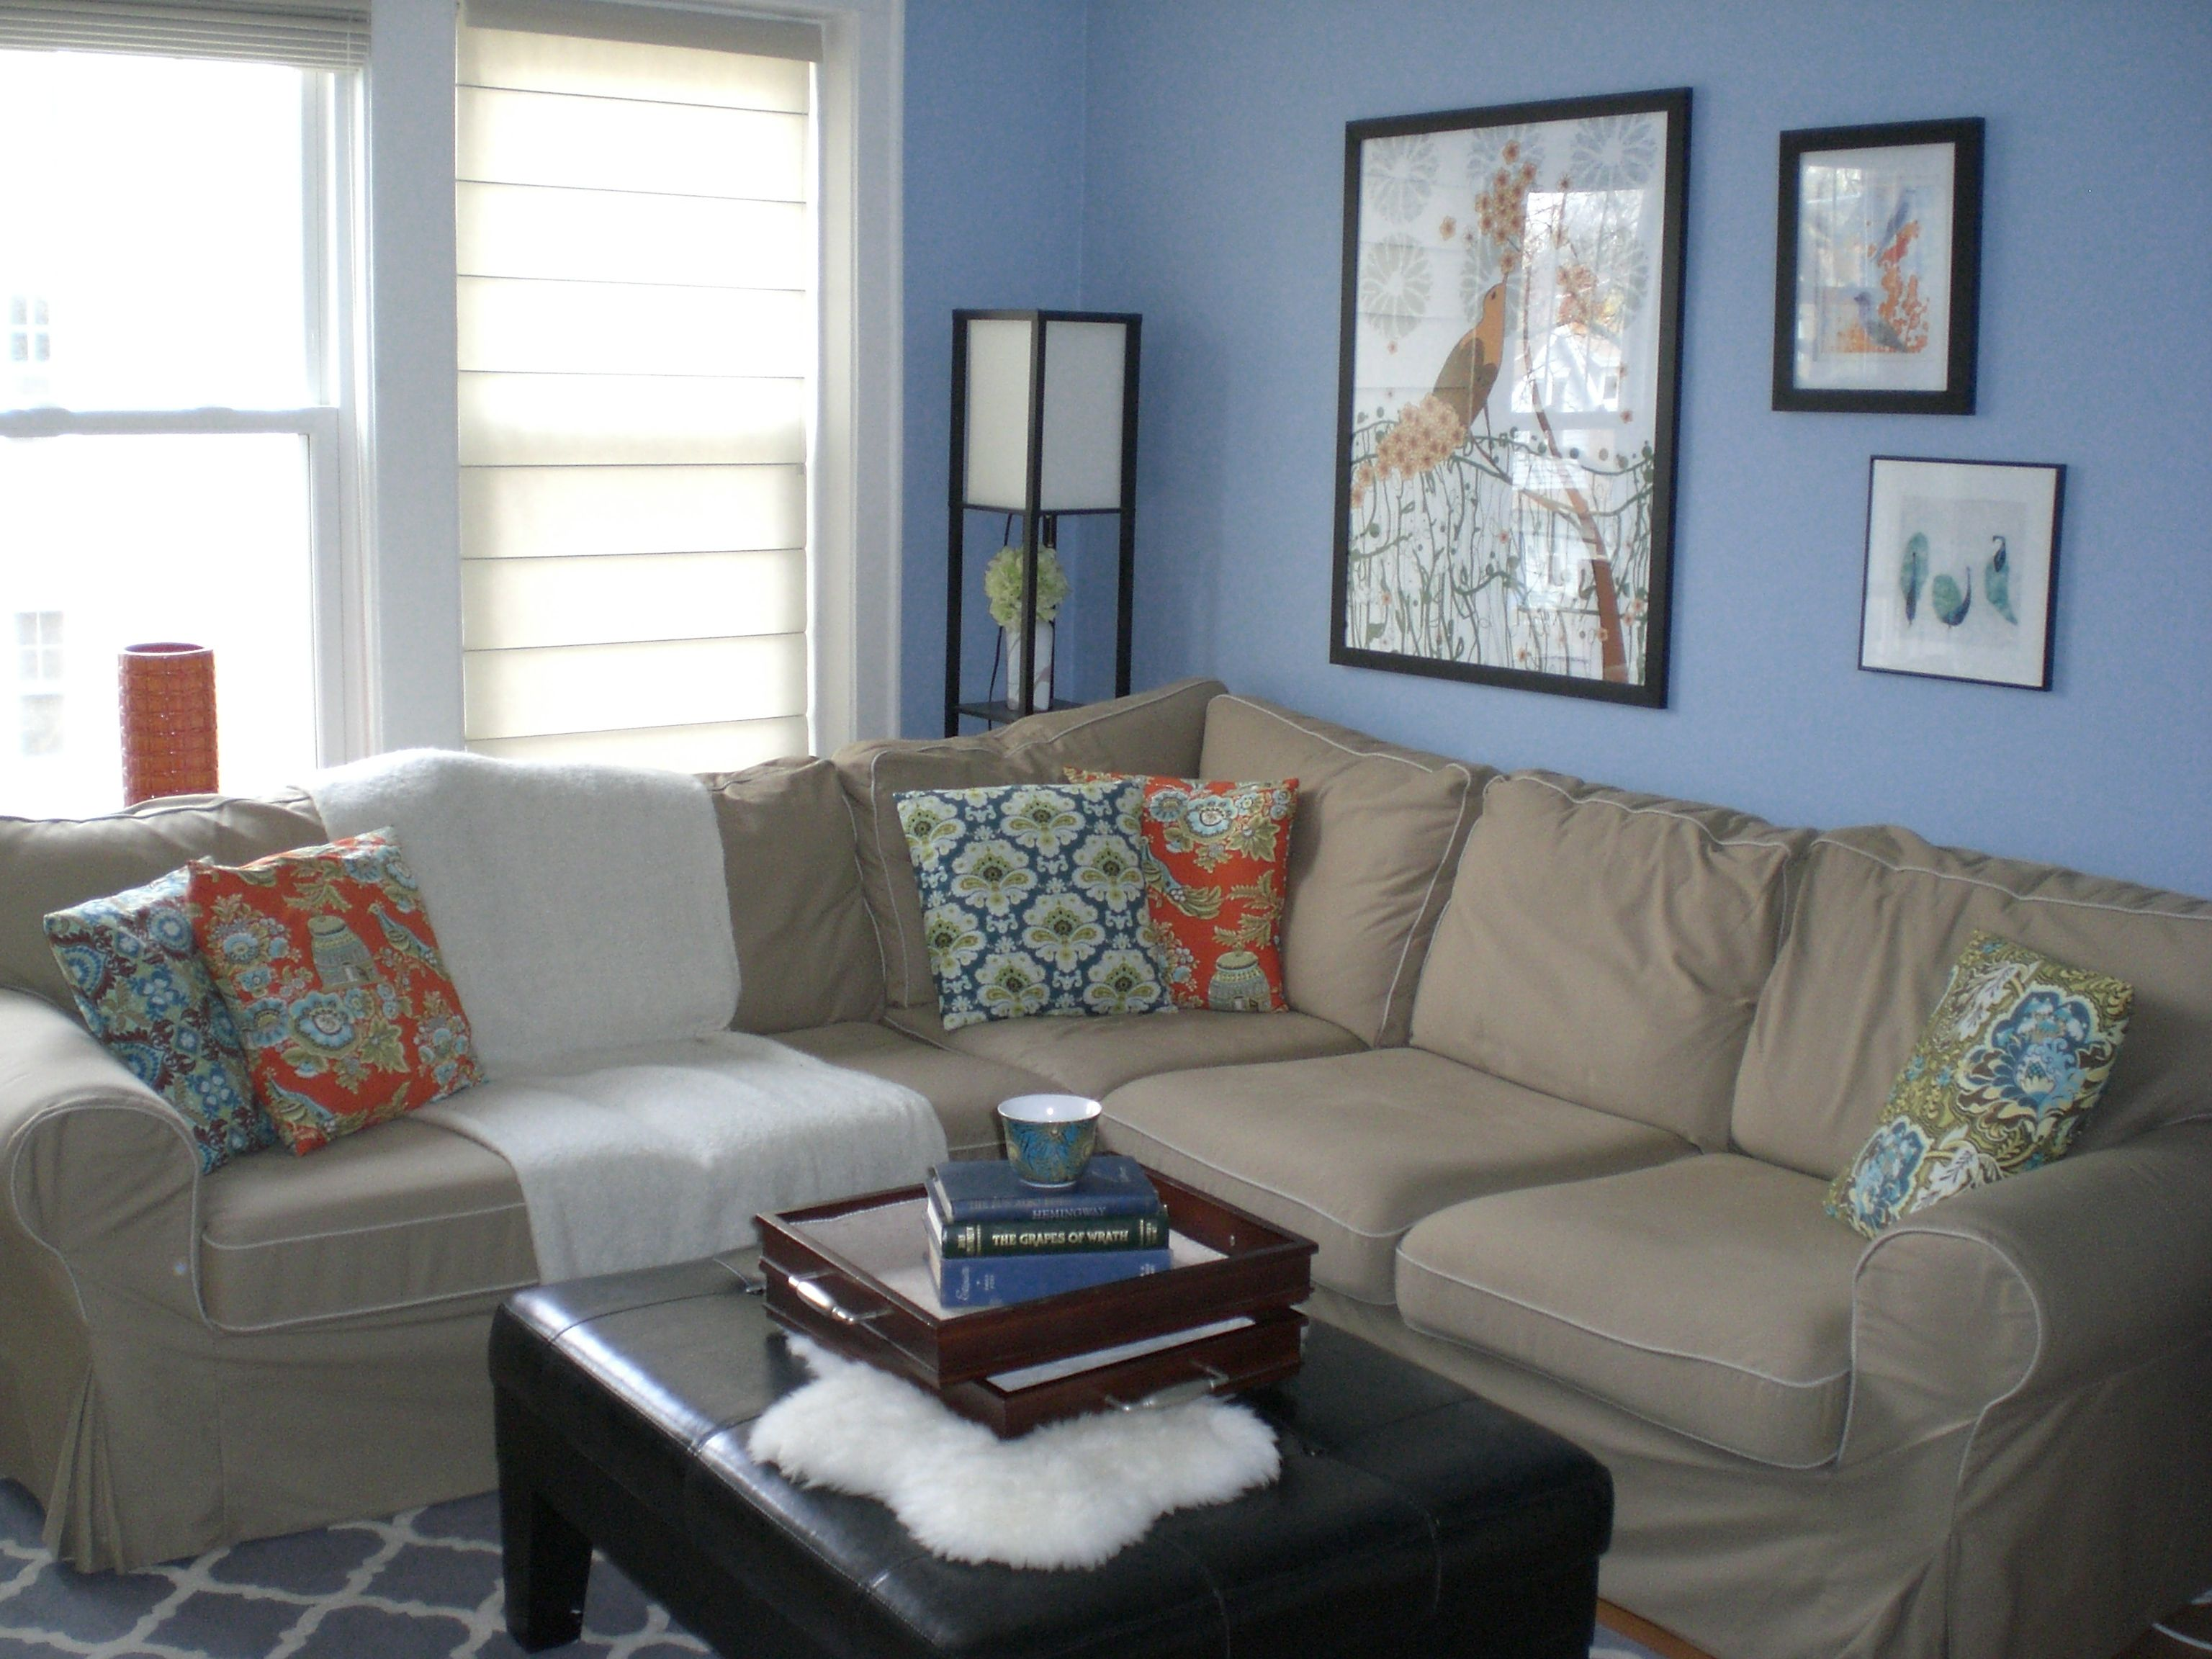 Light blue paint colors for living room xrkotdh living for Living room designs and colors